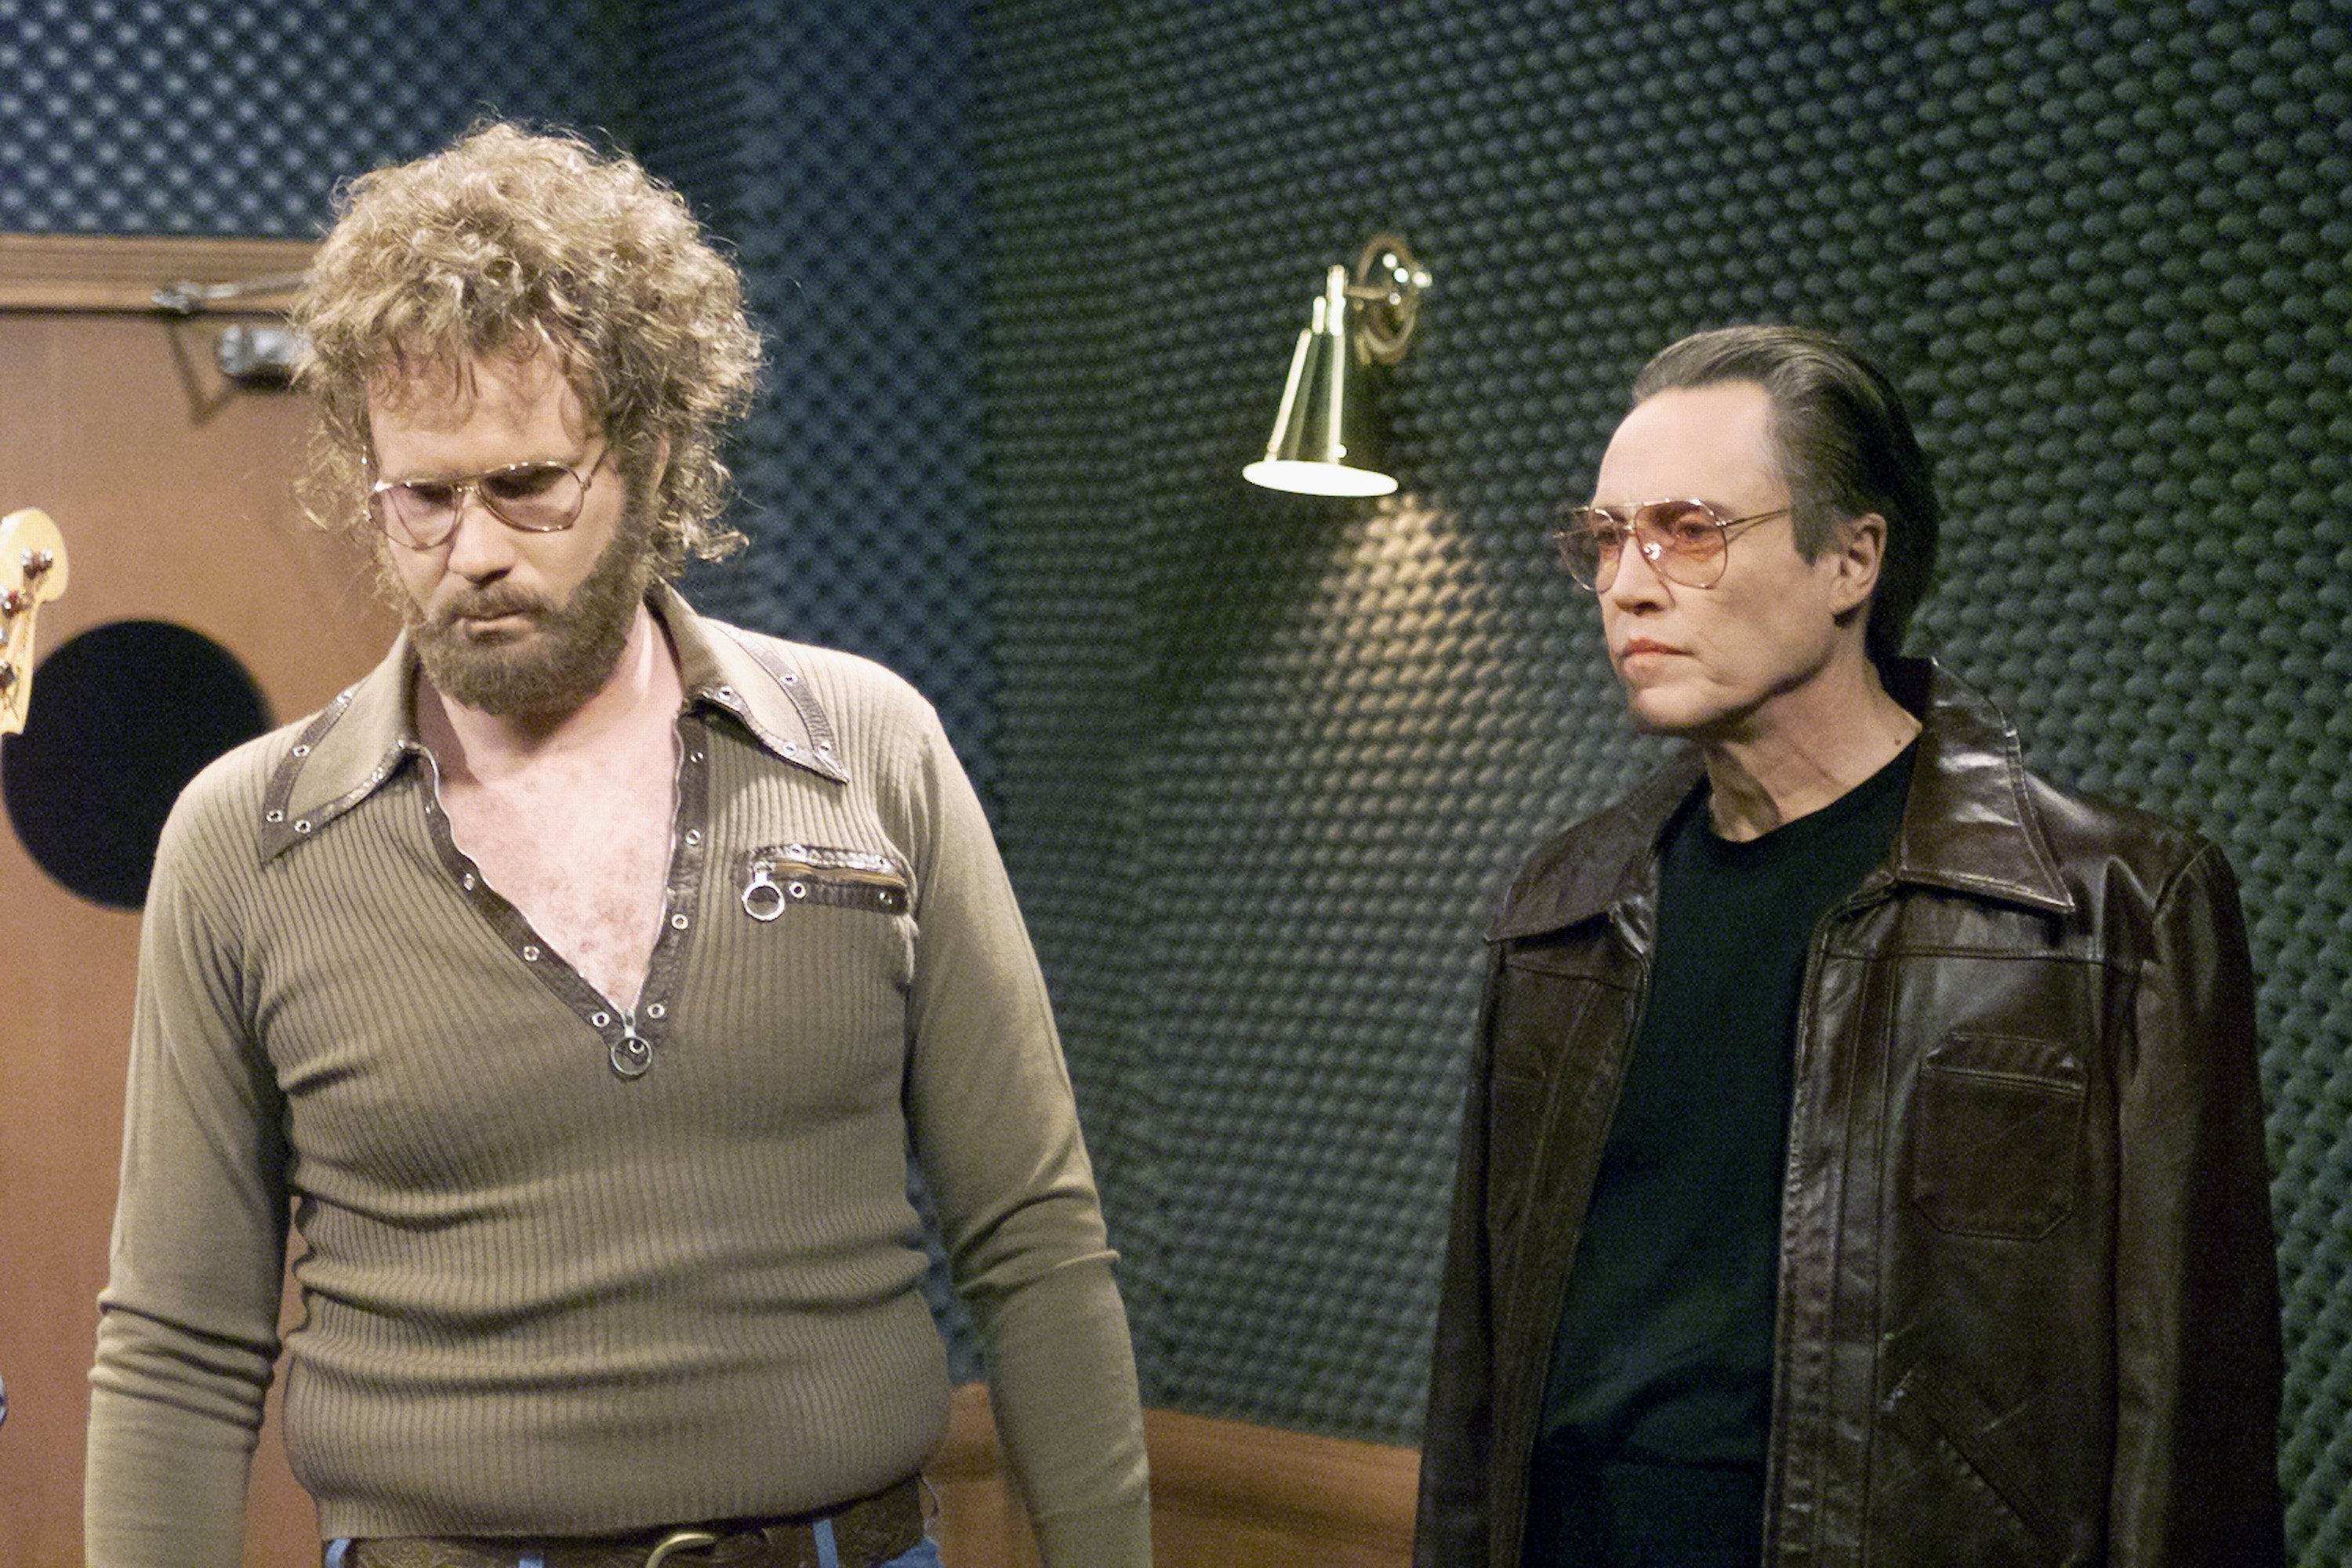 Christopher Walken couldn't escape popularity of 'SNL' cowbell sketch, according to Will Ferrell